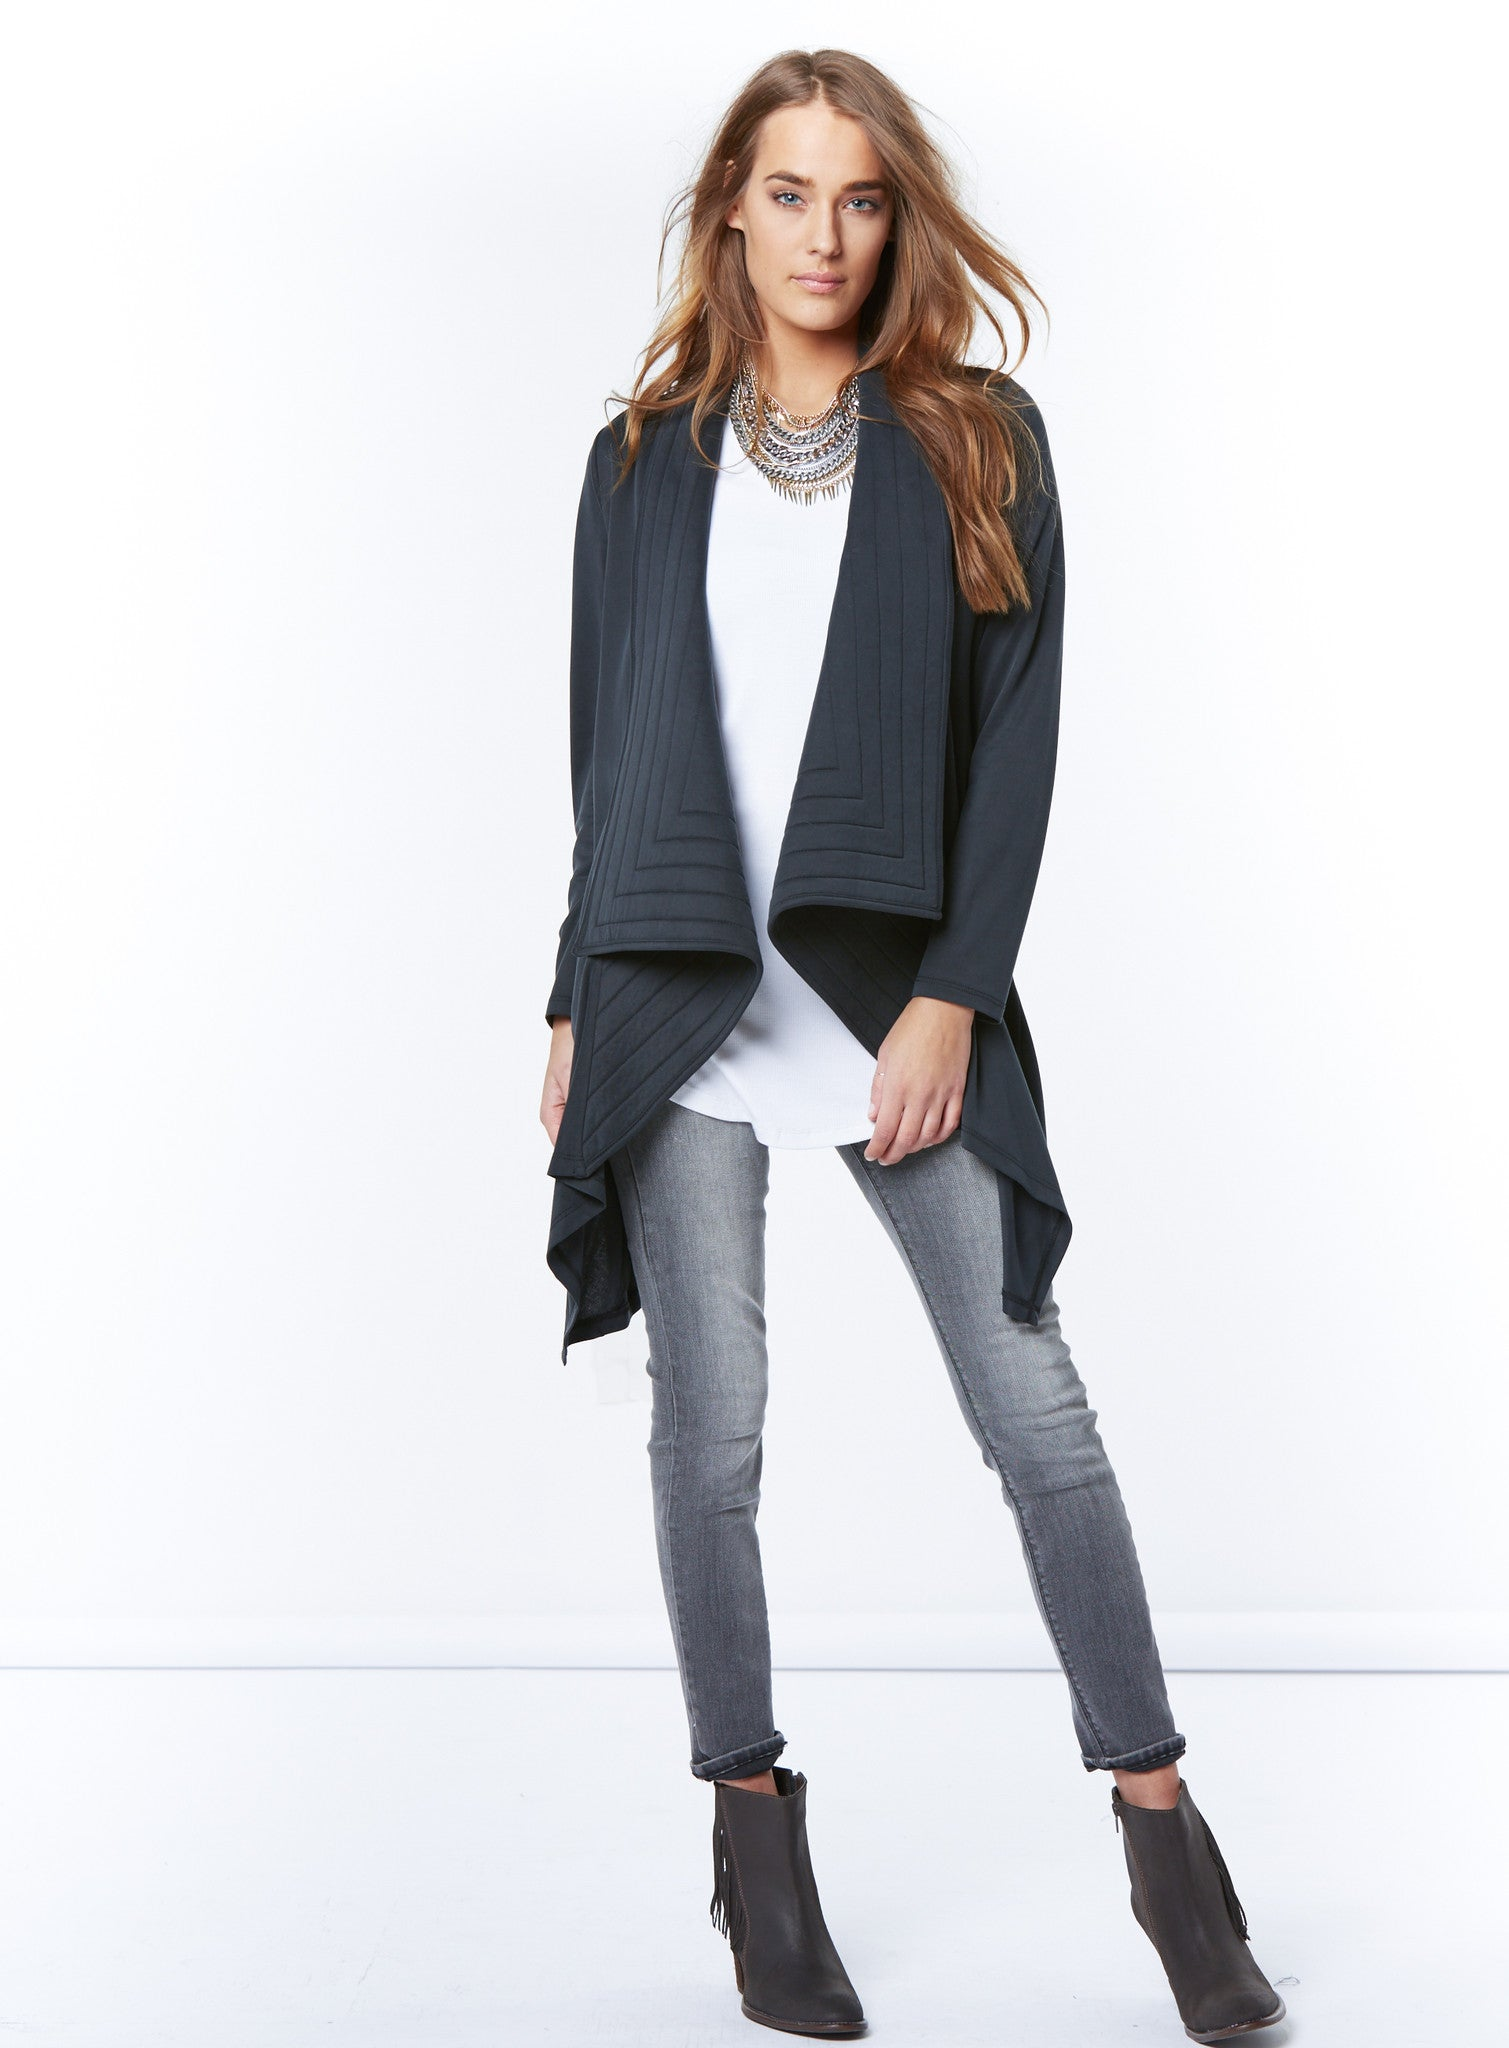 paige quilted cardigan